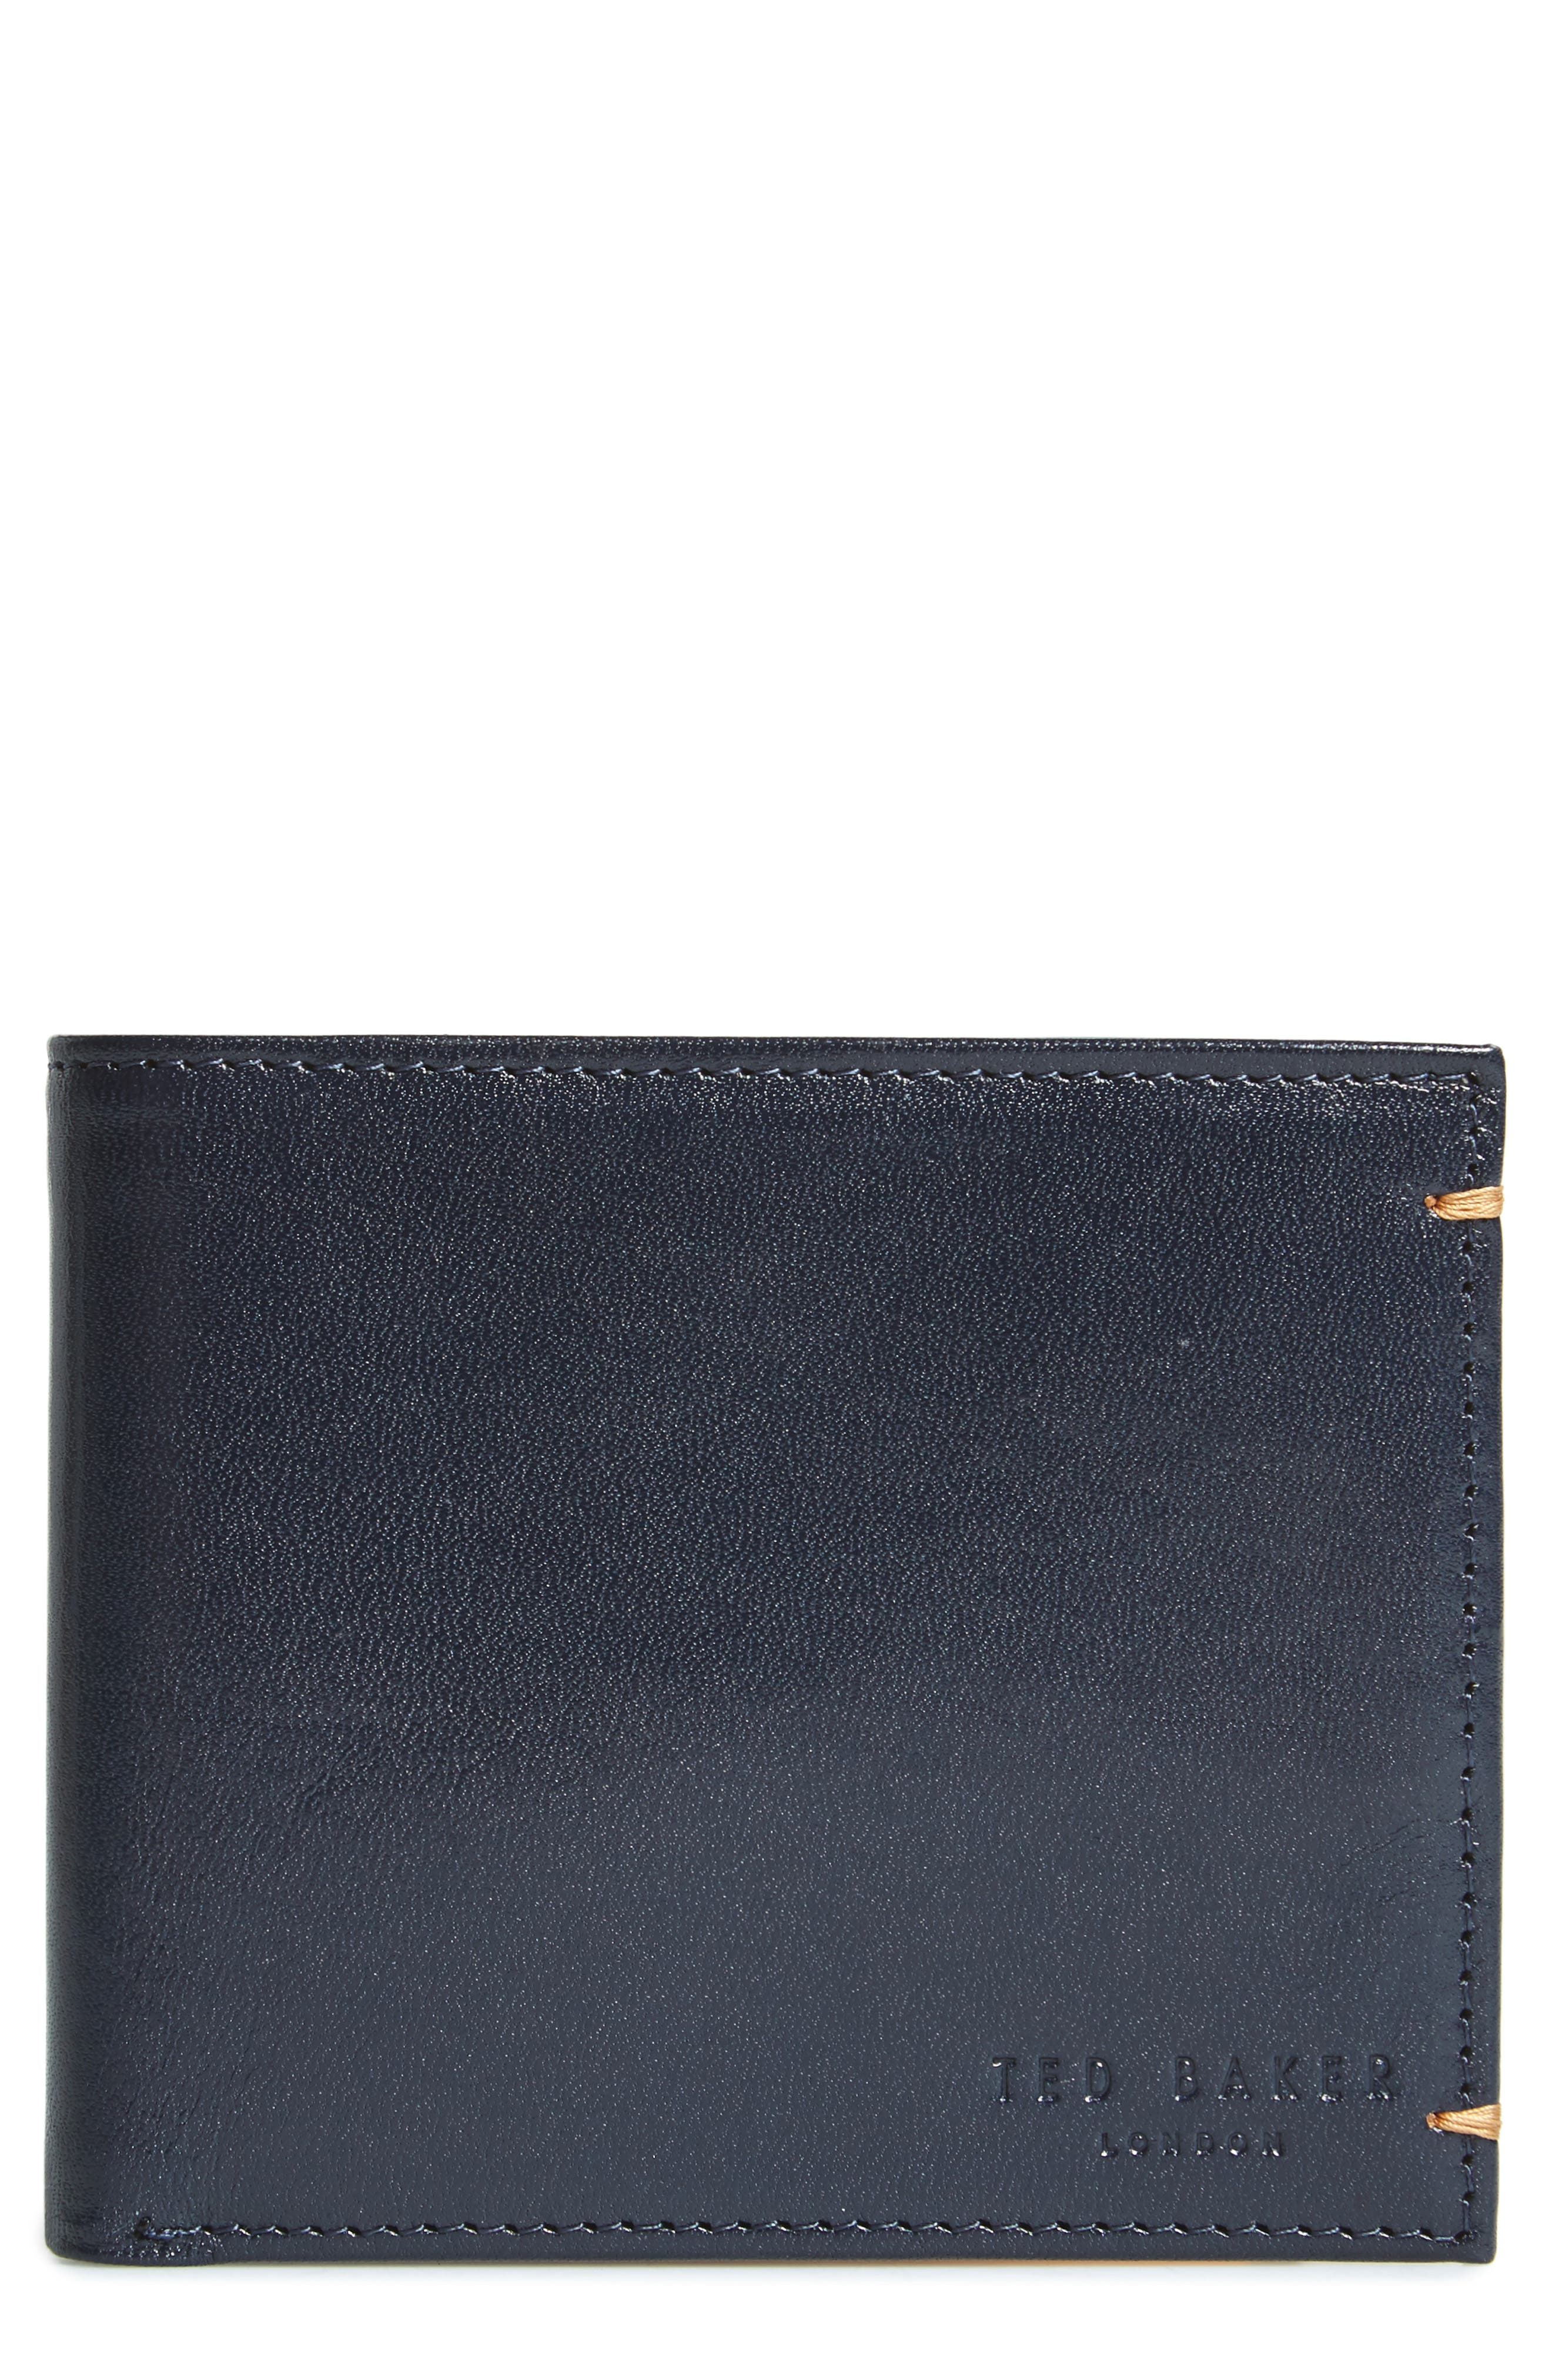 Main Image - Ted Baker London Vivid Leather Wallet